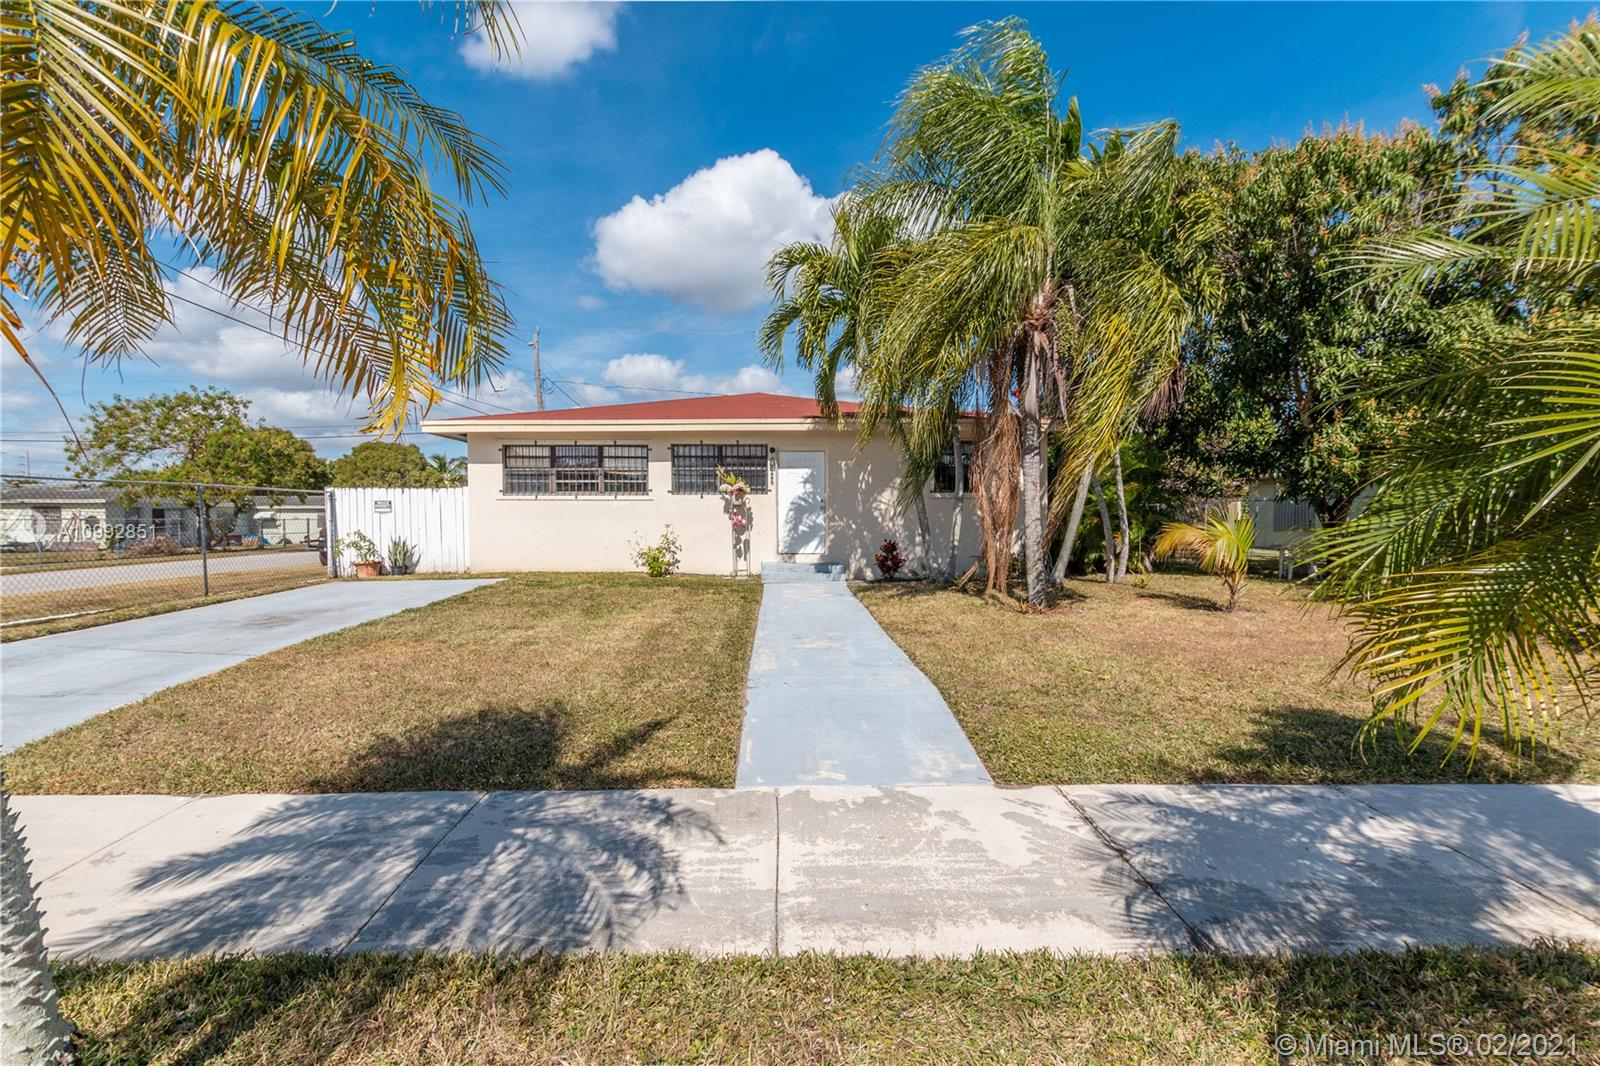 10495 SW 170th Ter, Miami, Florida 33157, 3 Bedrooms Bedrooms, ,2 BathroomsBathrooms,Residential,For Sale,10495 SW 170th Ter,A10992851